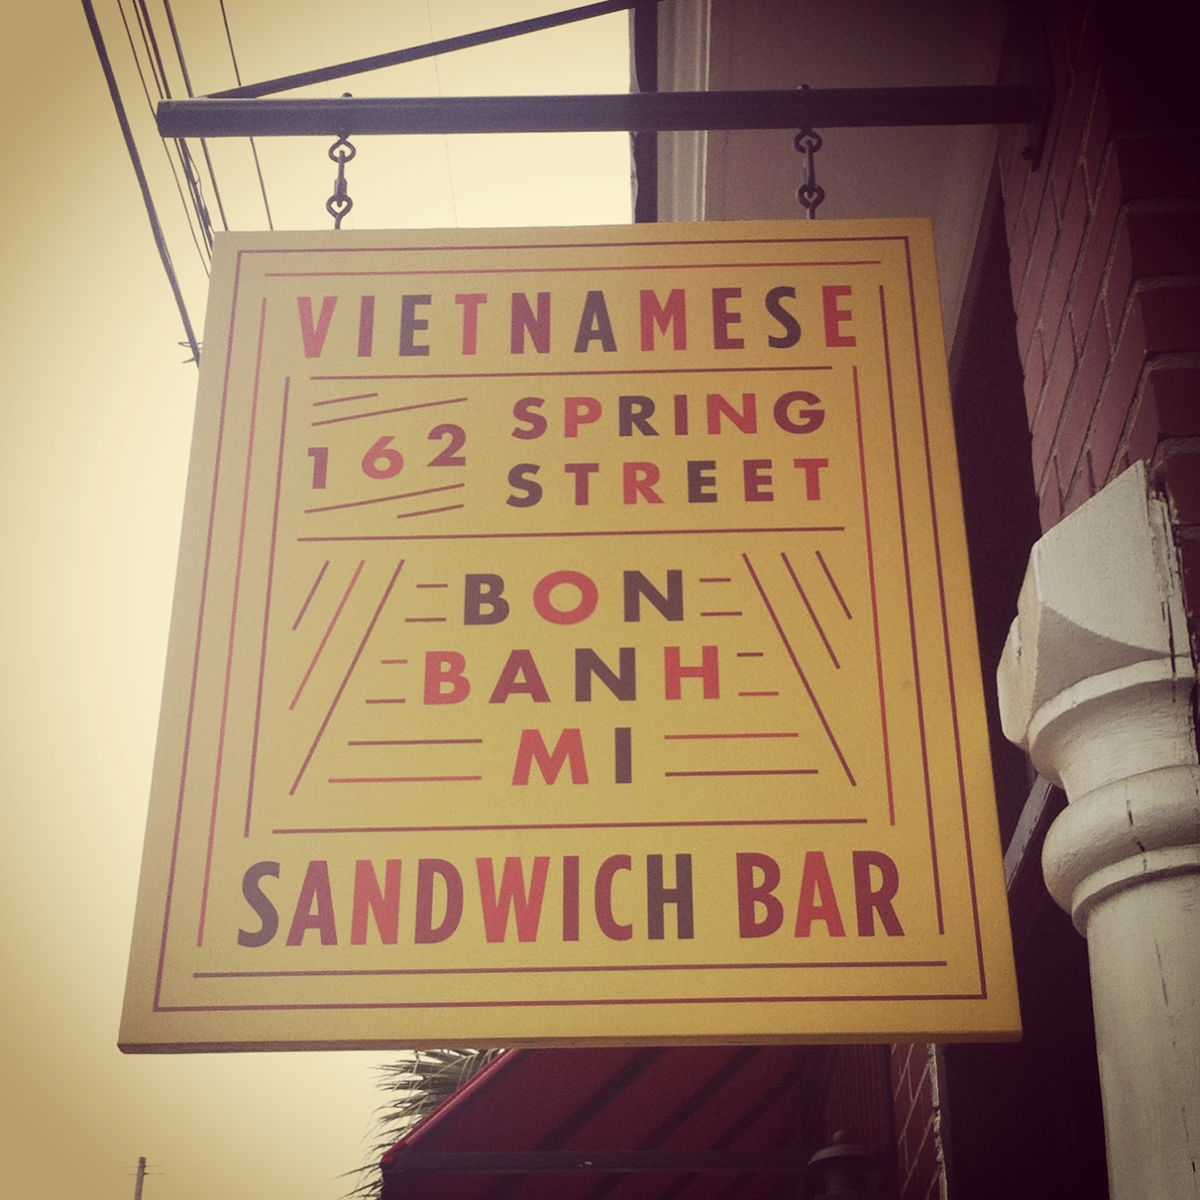 bon bahn tasty sandwiches for me!